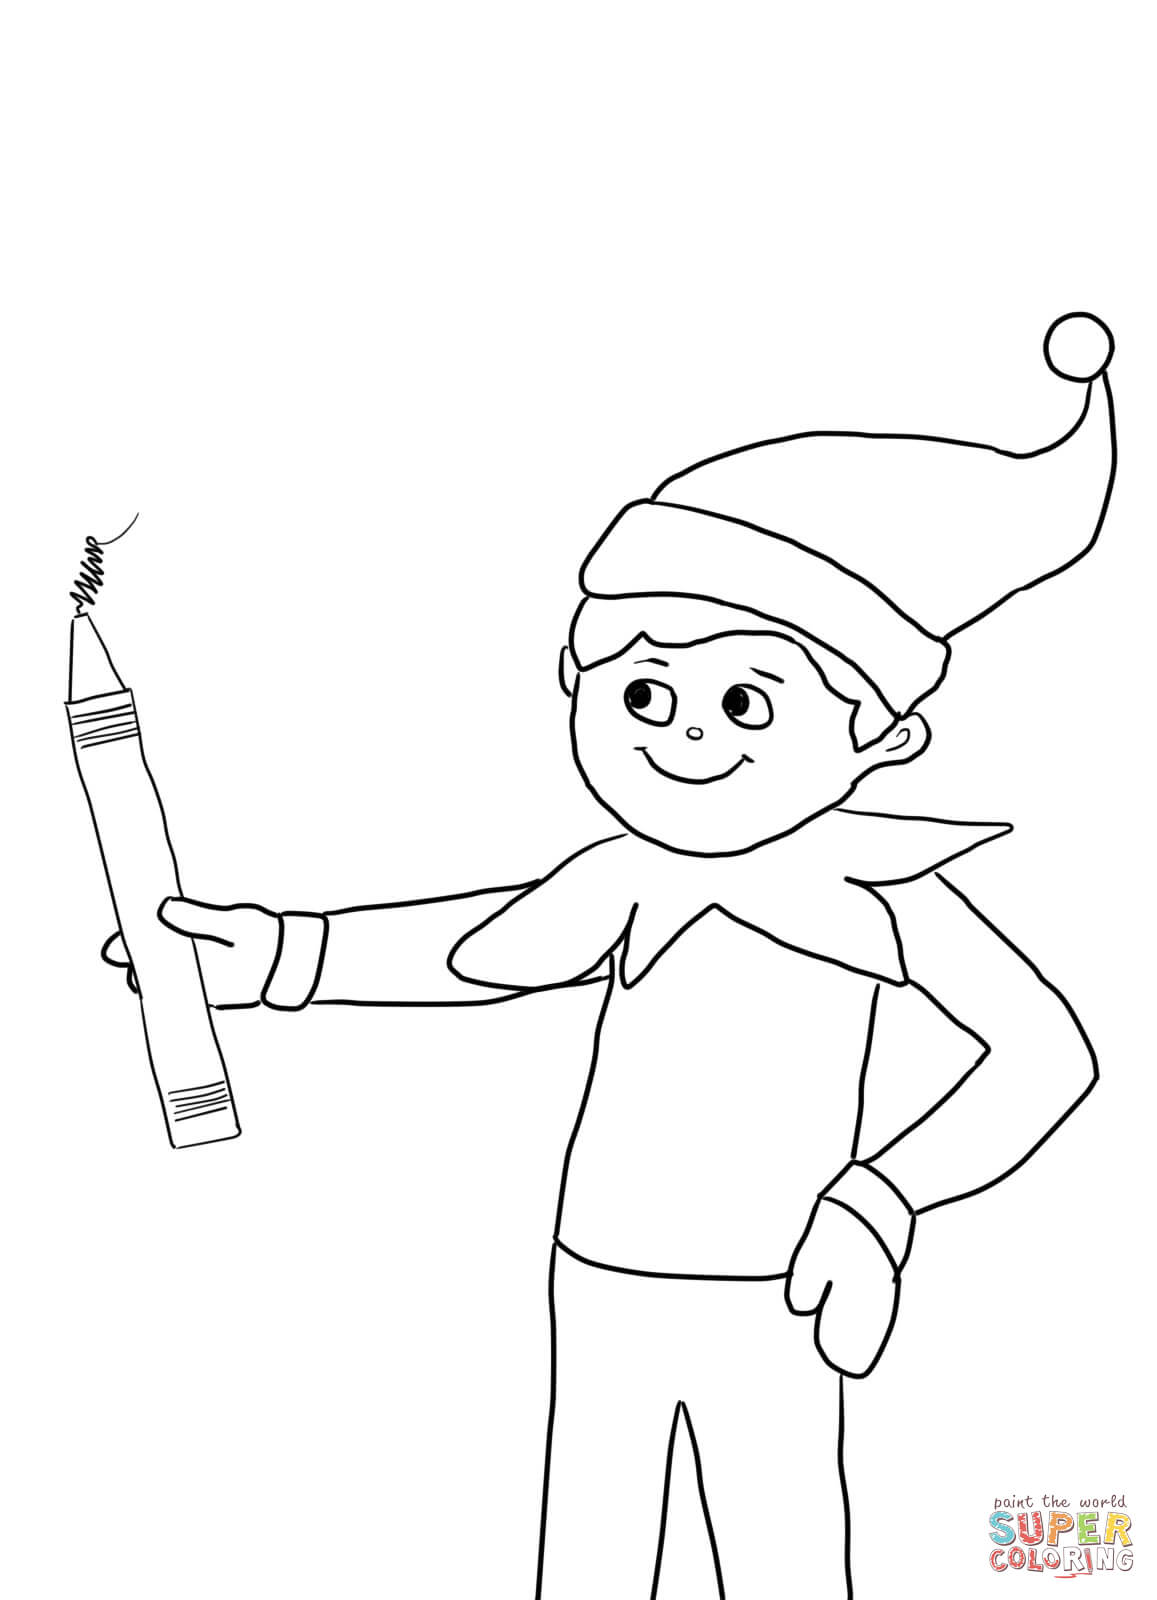 photo about Elf on the Shelf Printable Coloring Pages titled Elf Upon The Shelf Coloring Web pages Toward Print - Coloring House